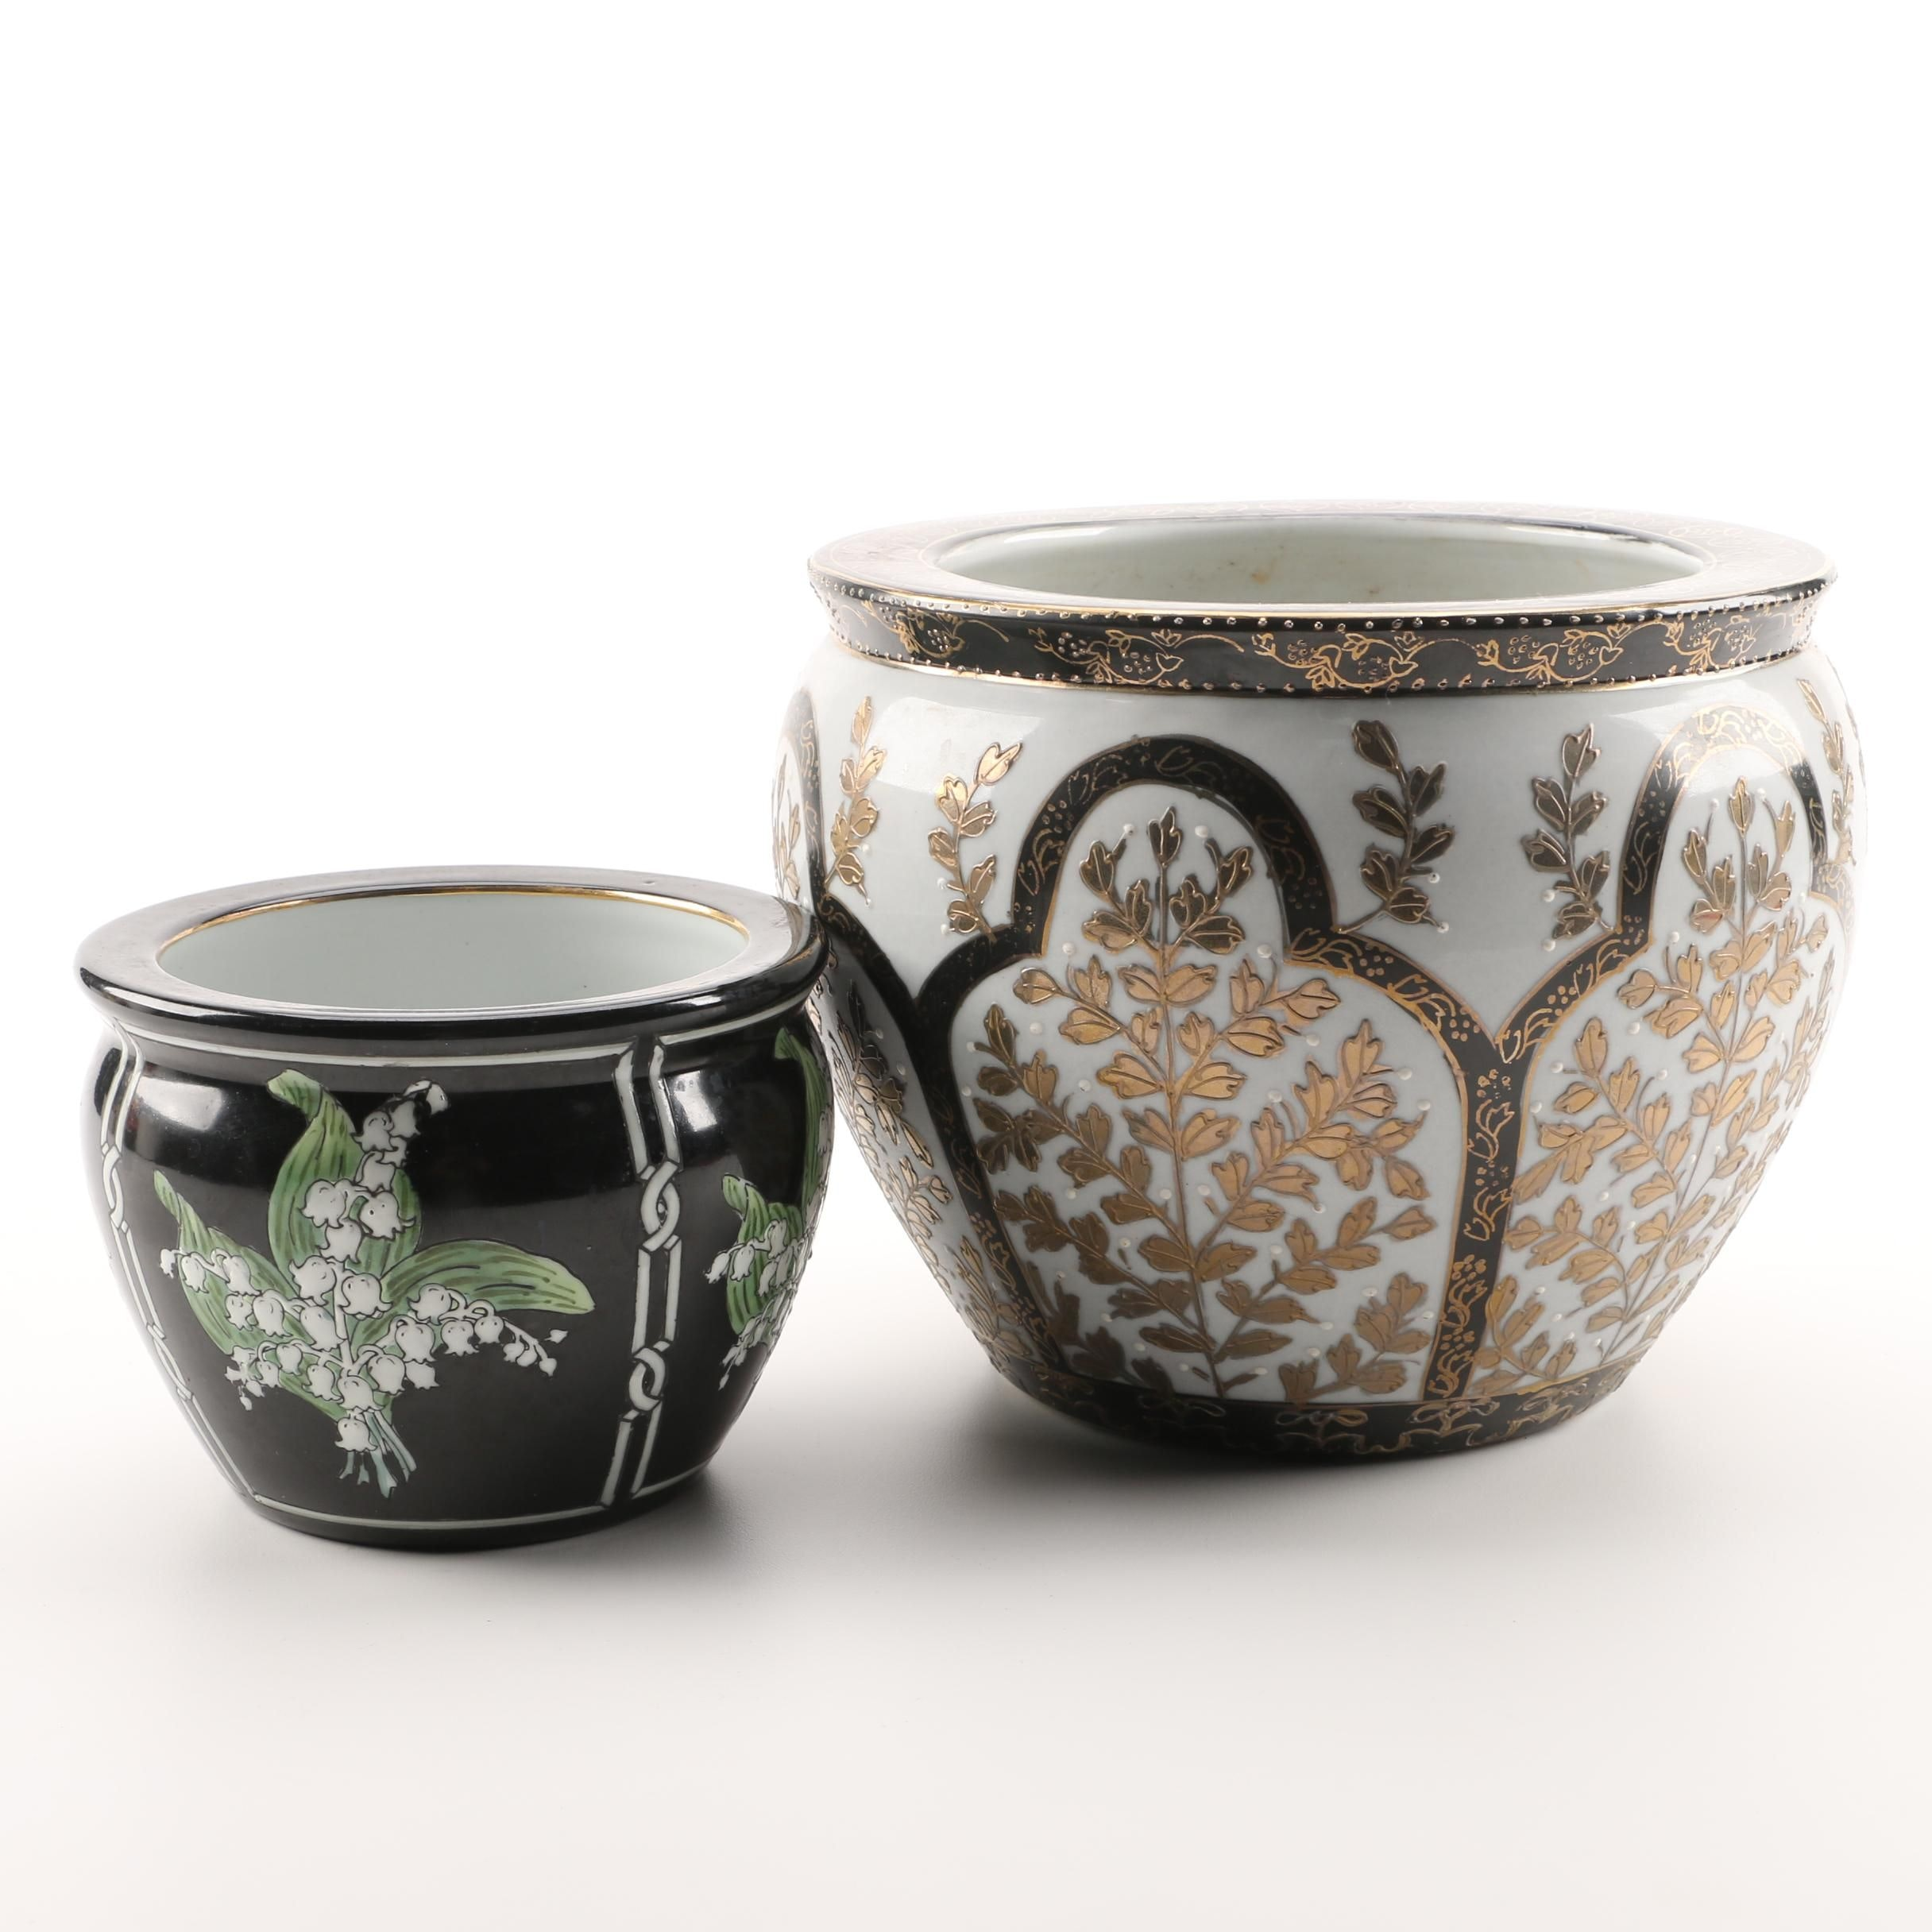 Ceramic Planters With Floral Motifs